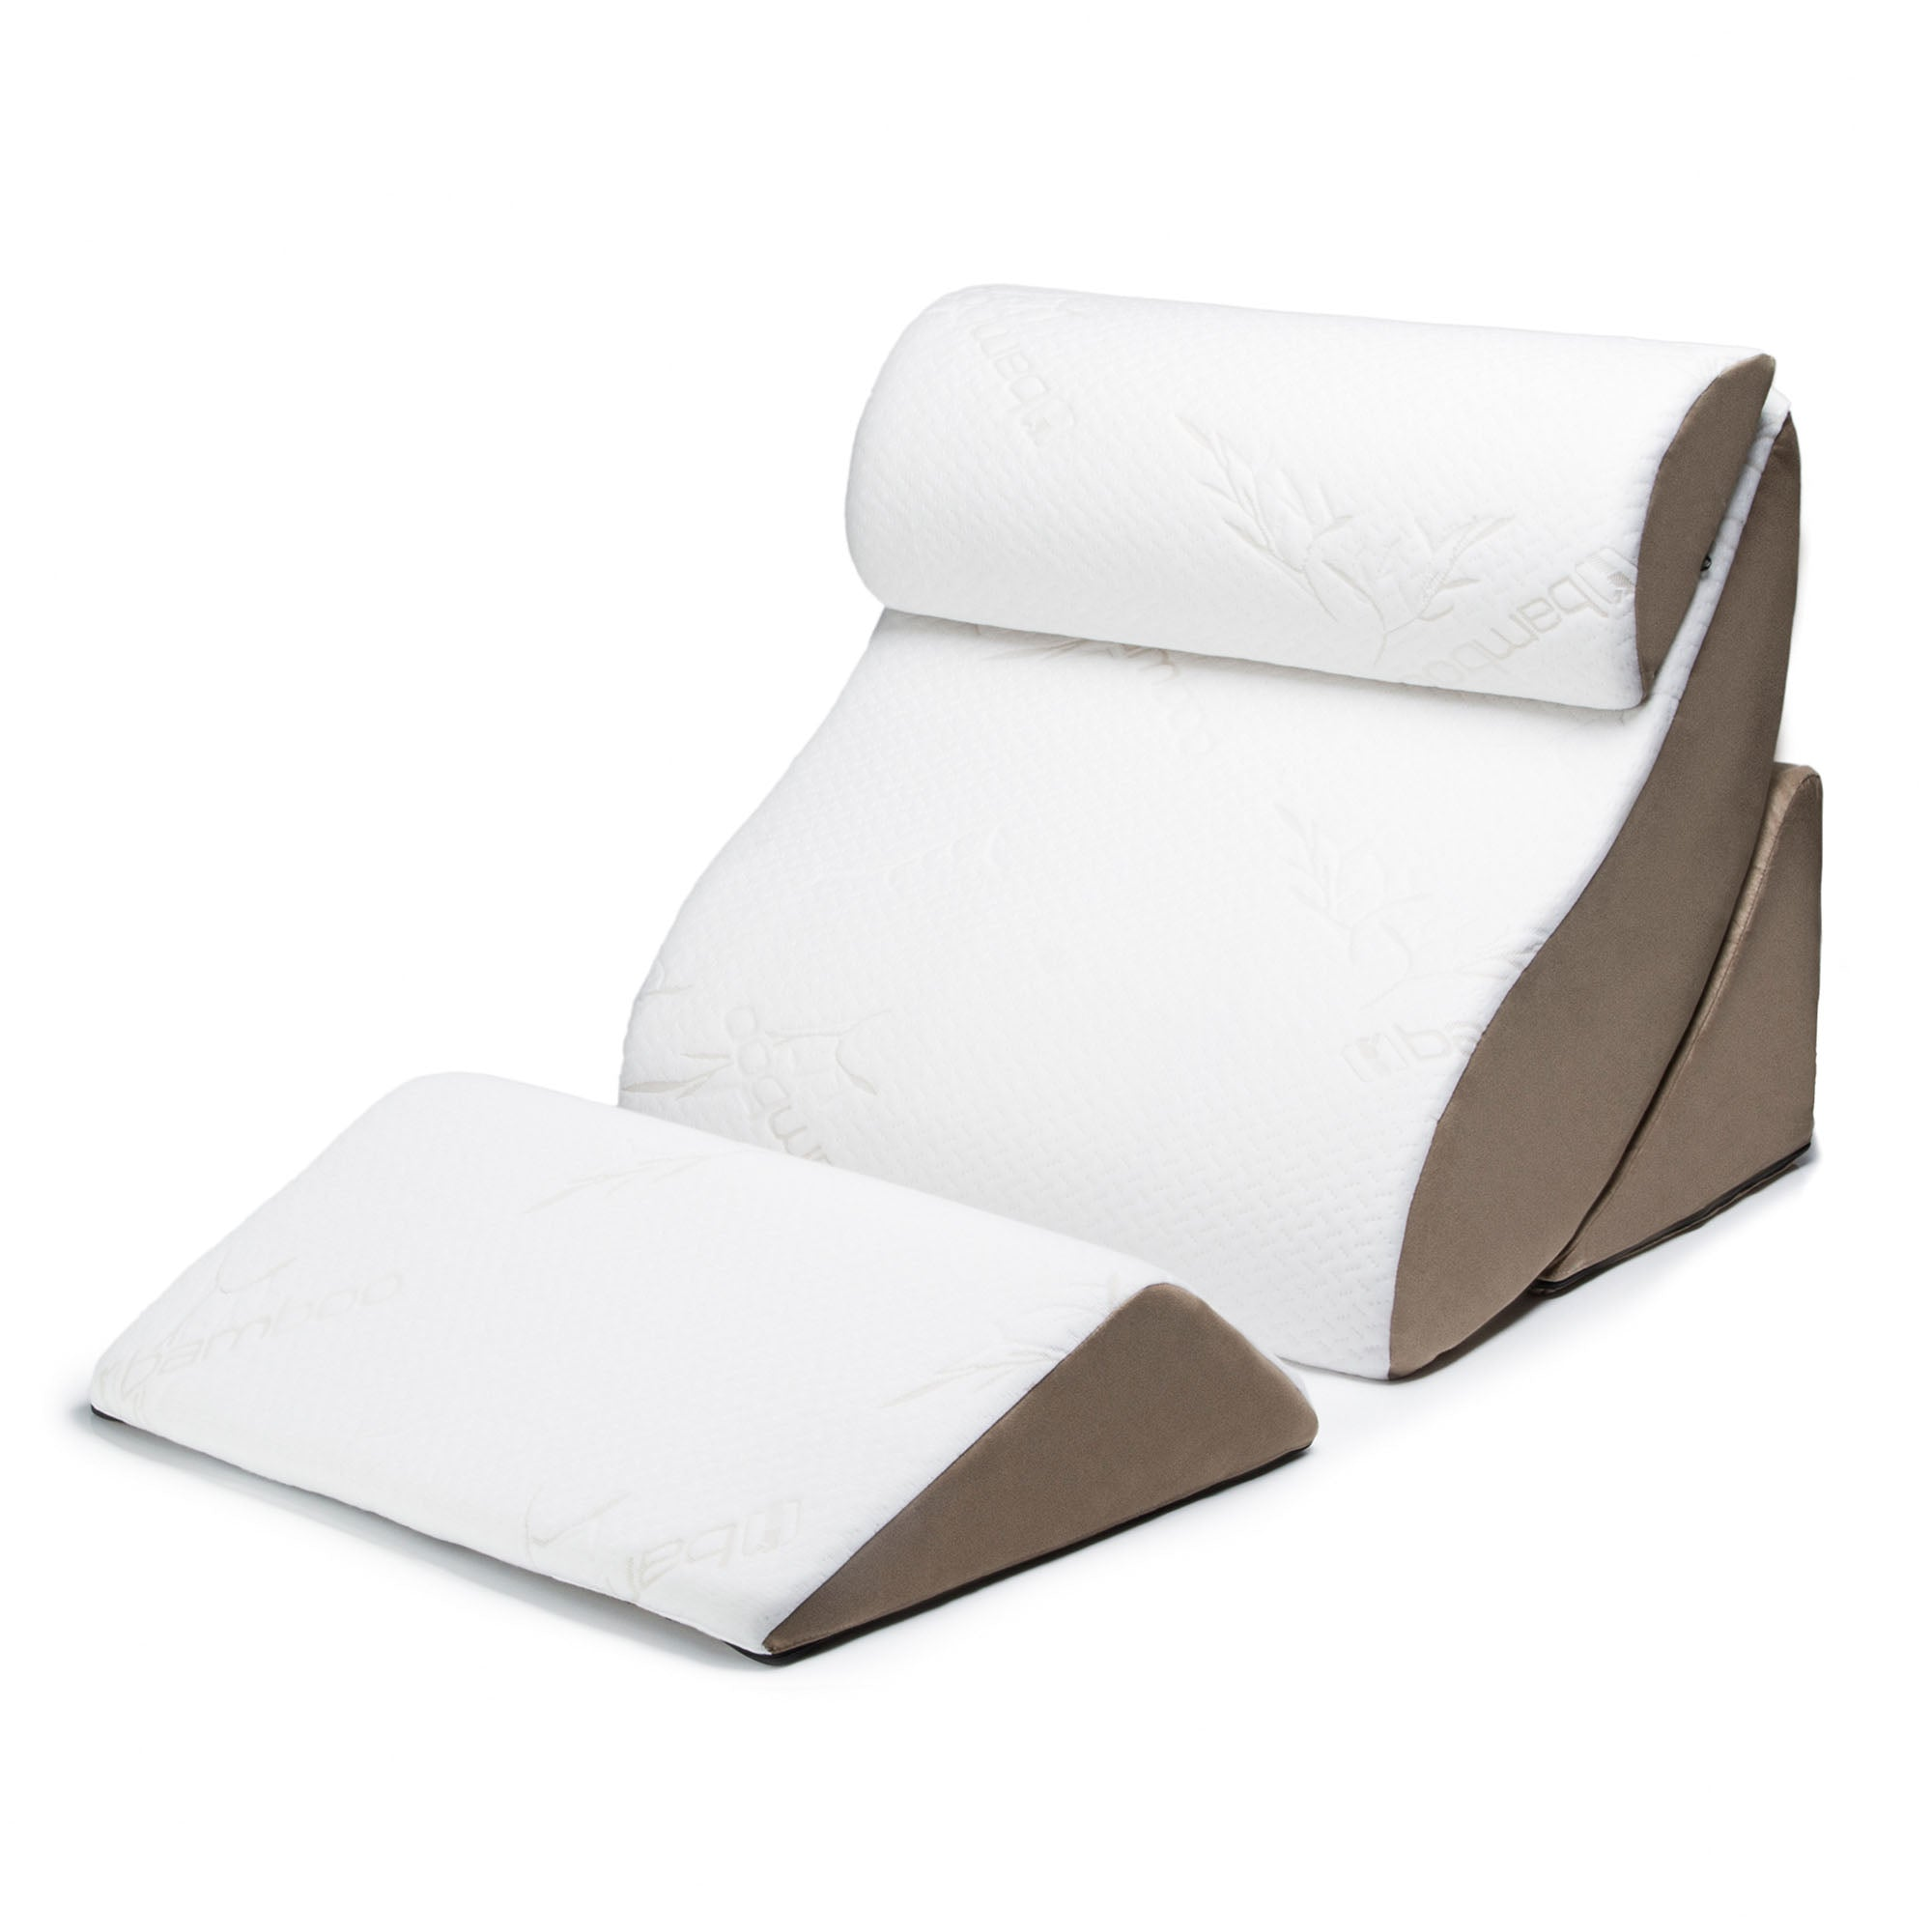 Avana Kind Bed Orthopedic Support Pillow Comfort System